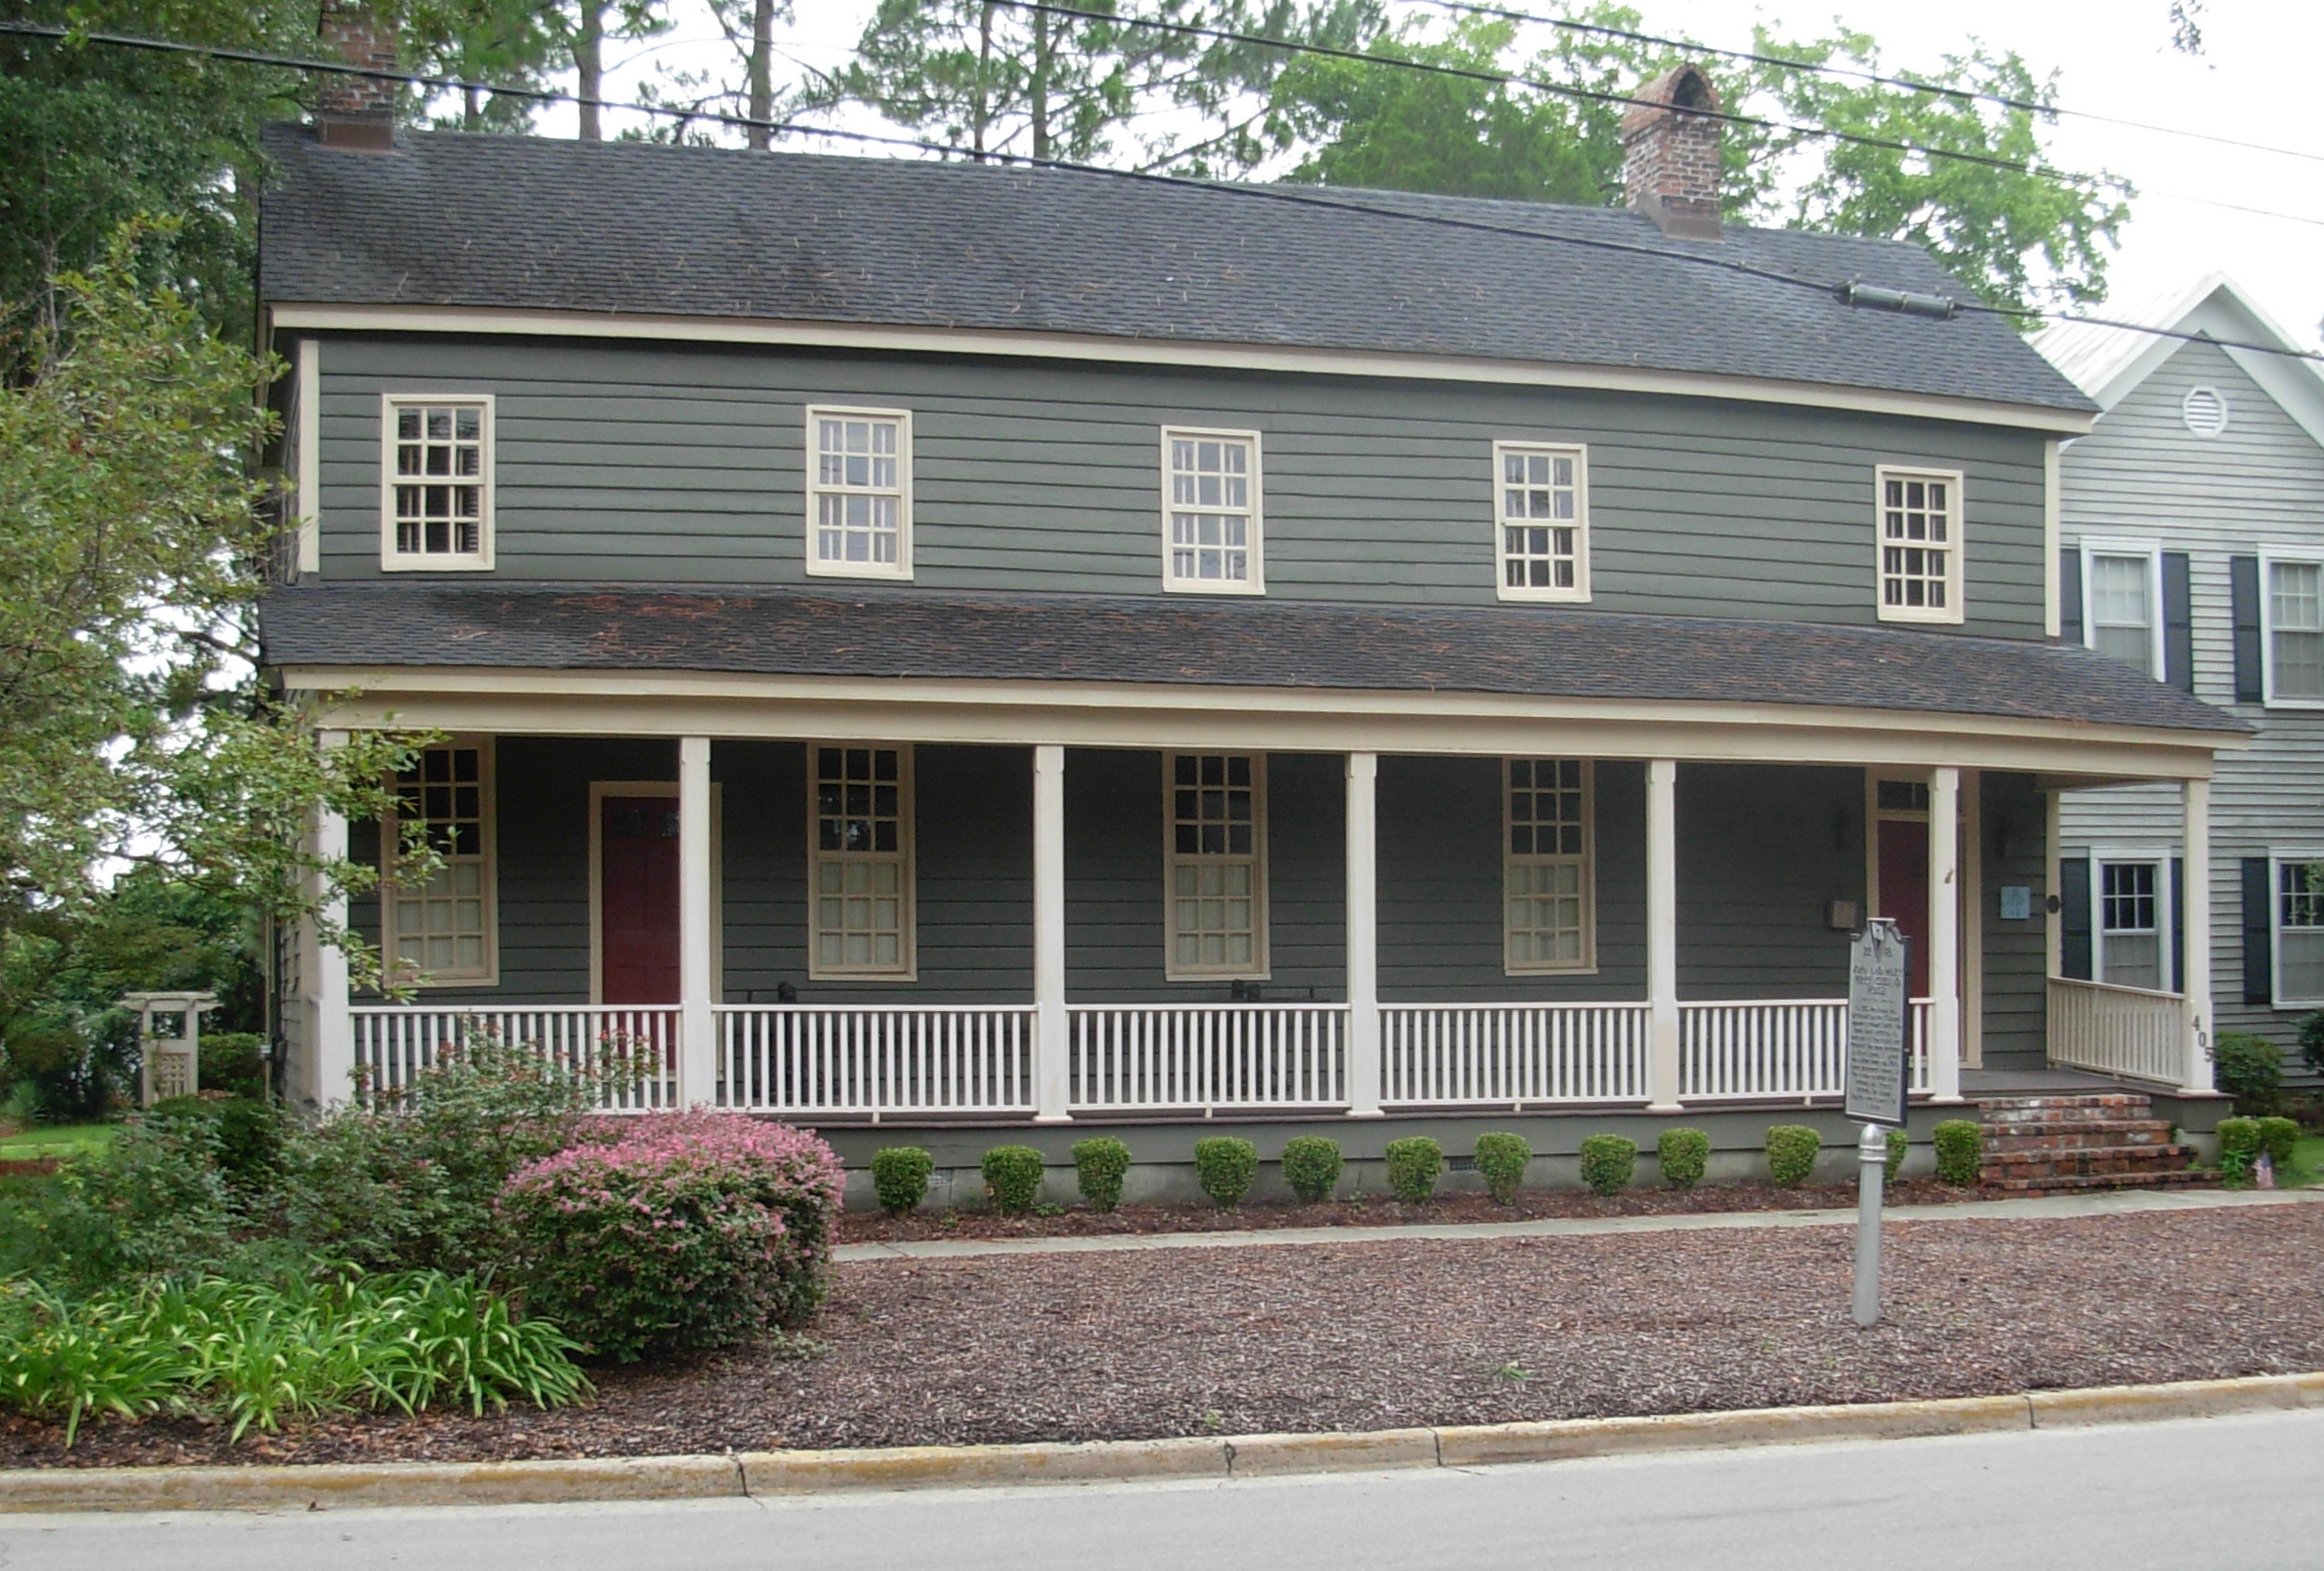 Cleland House Georgetown South Carolina ghost haunted